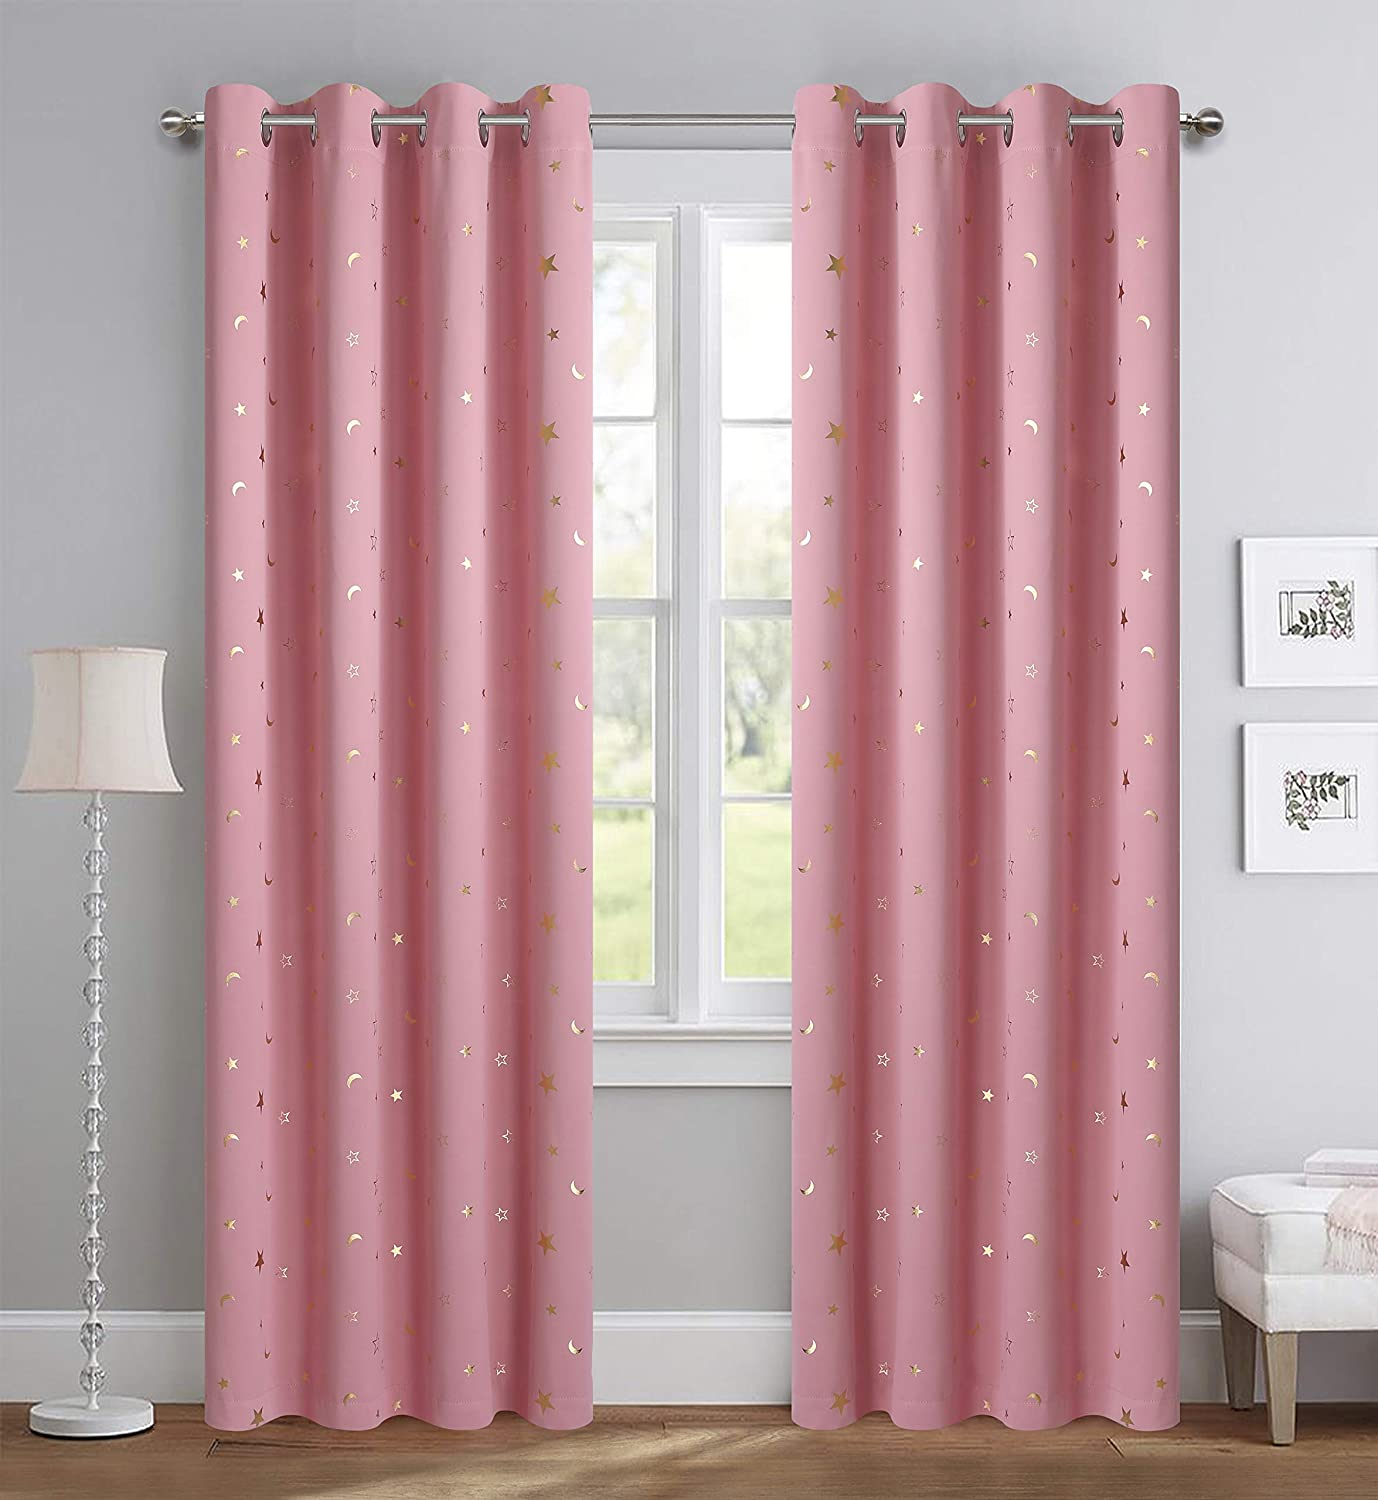 Amazon Com Girl Curtains For Bedroom Pink With Gold Stars Blackout Window Drapes For Nursery Heavy And Soft Energy Efficient Grommet Top 52 Inch Wide By 84 Inch Long Set Of 2 Arts